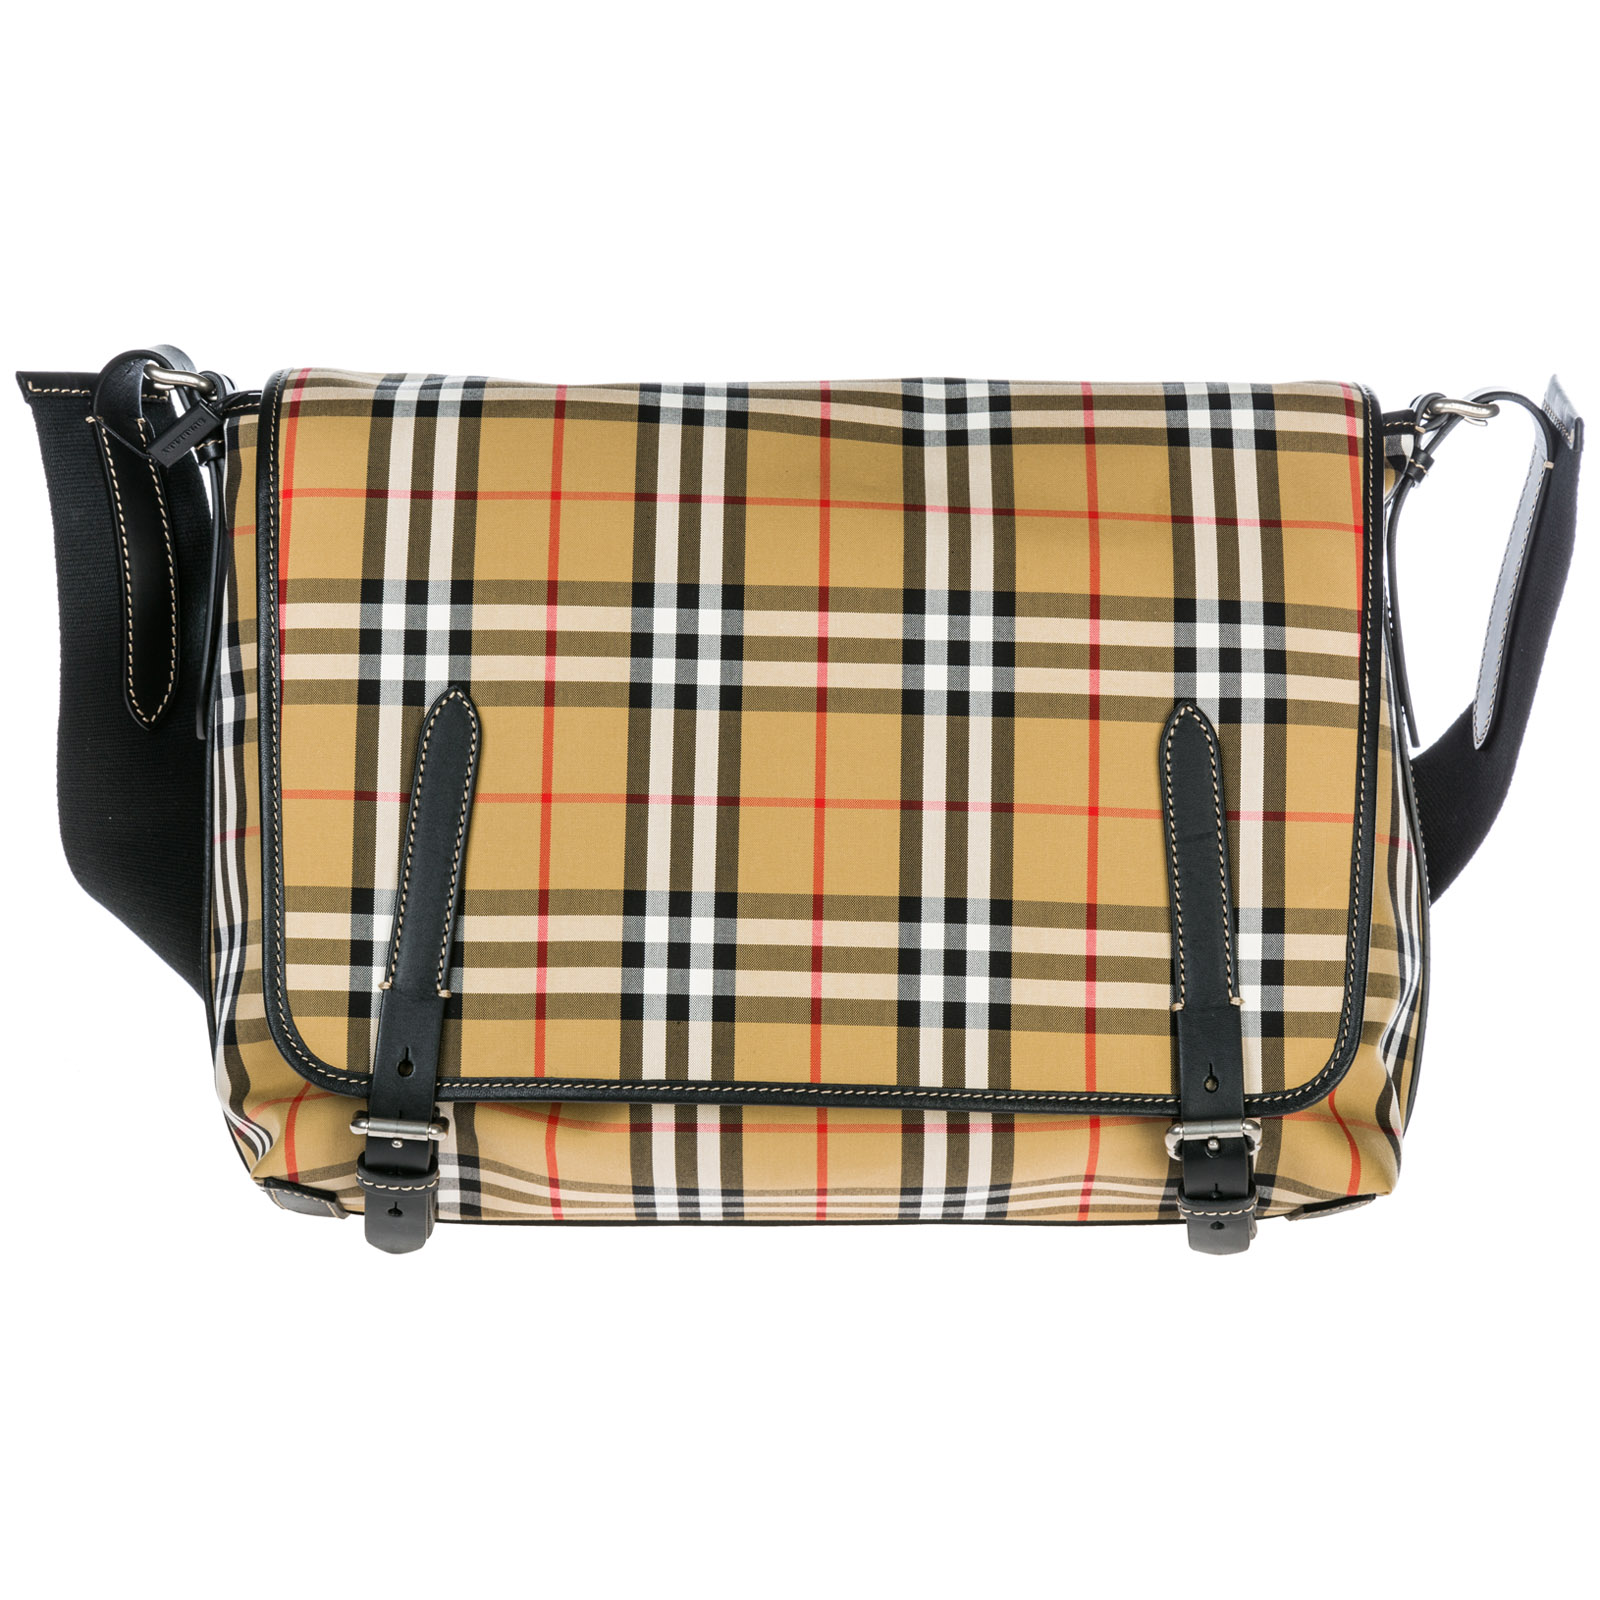 24ee5854d160 Burberry Men s cross-body messenger shoulder bag burleigh